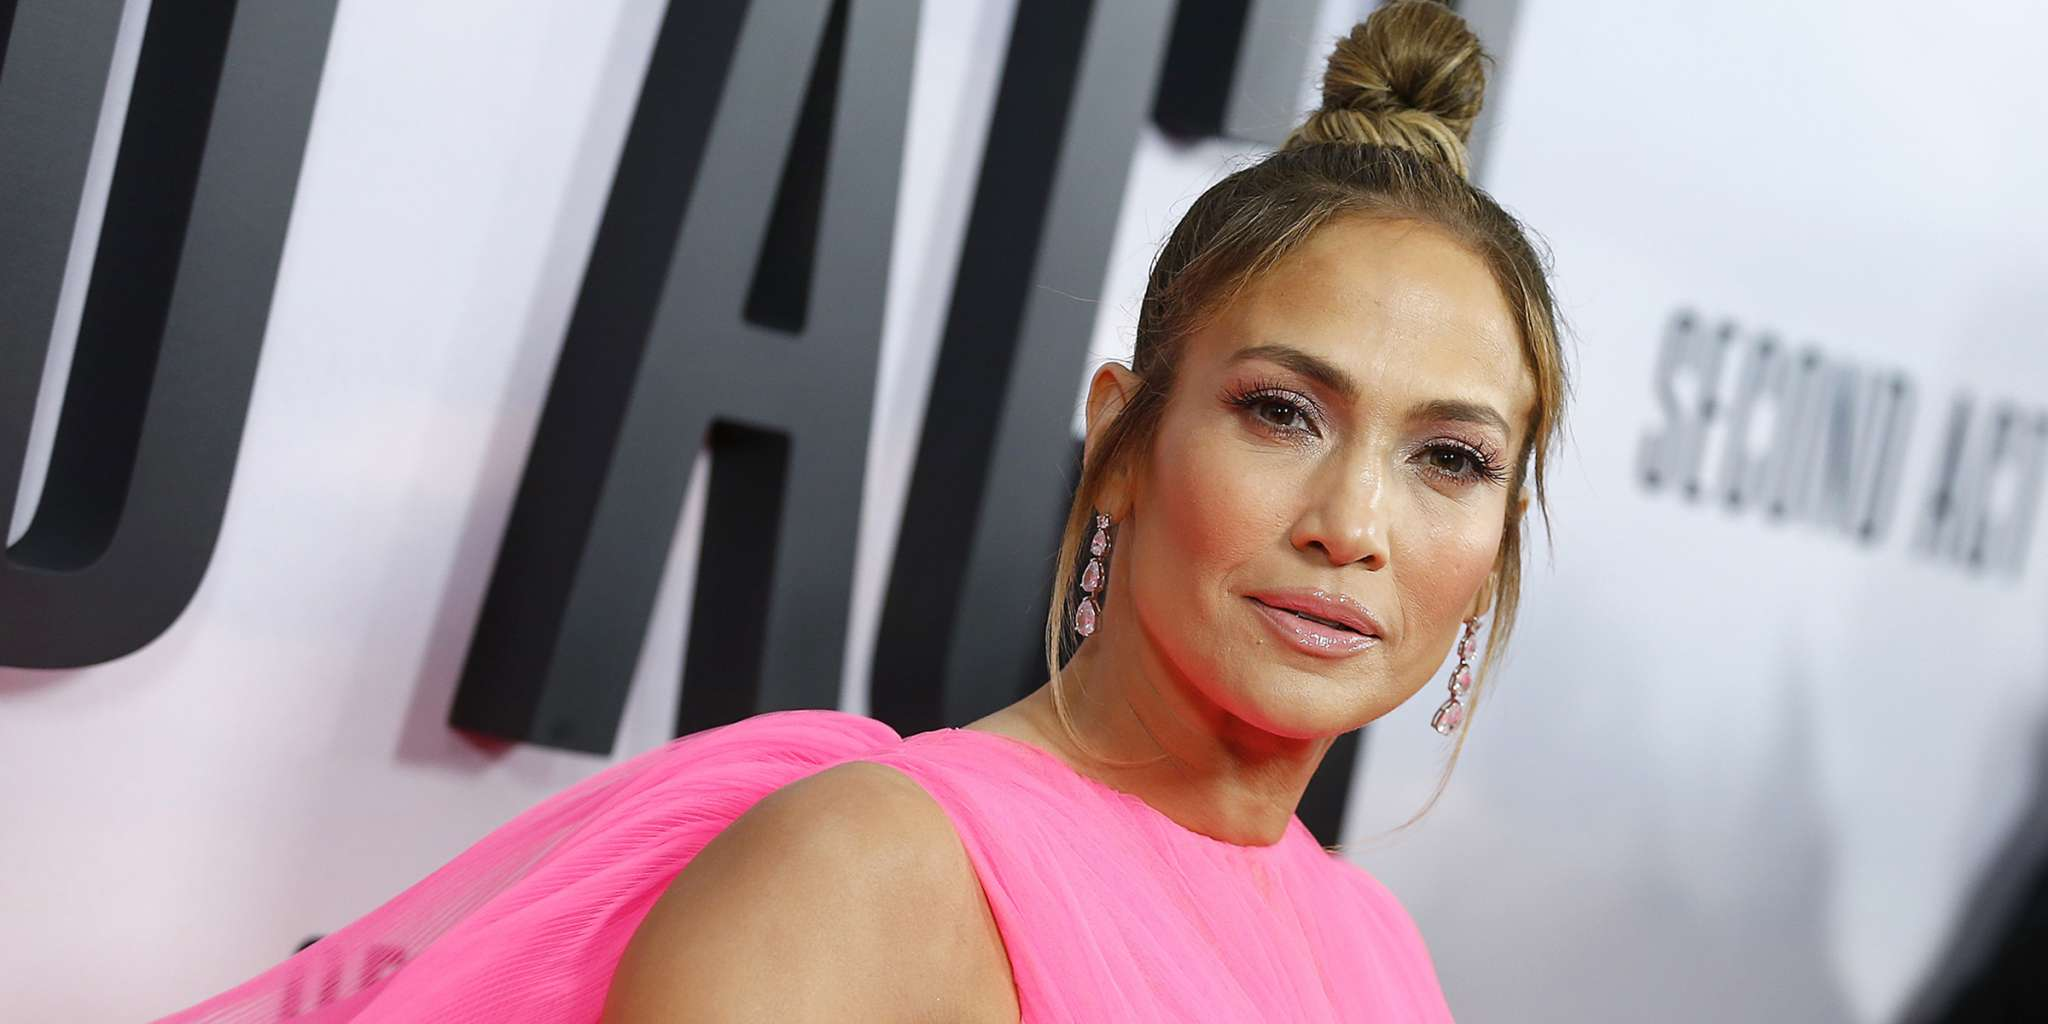 jennifer-lopez-heres-who-nicknamed-her-j-lo-first-2-decades-ago